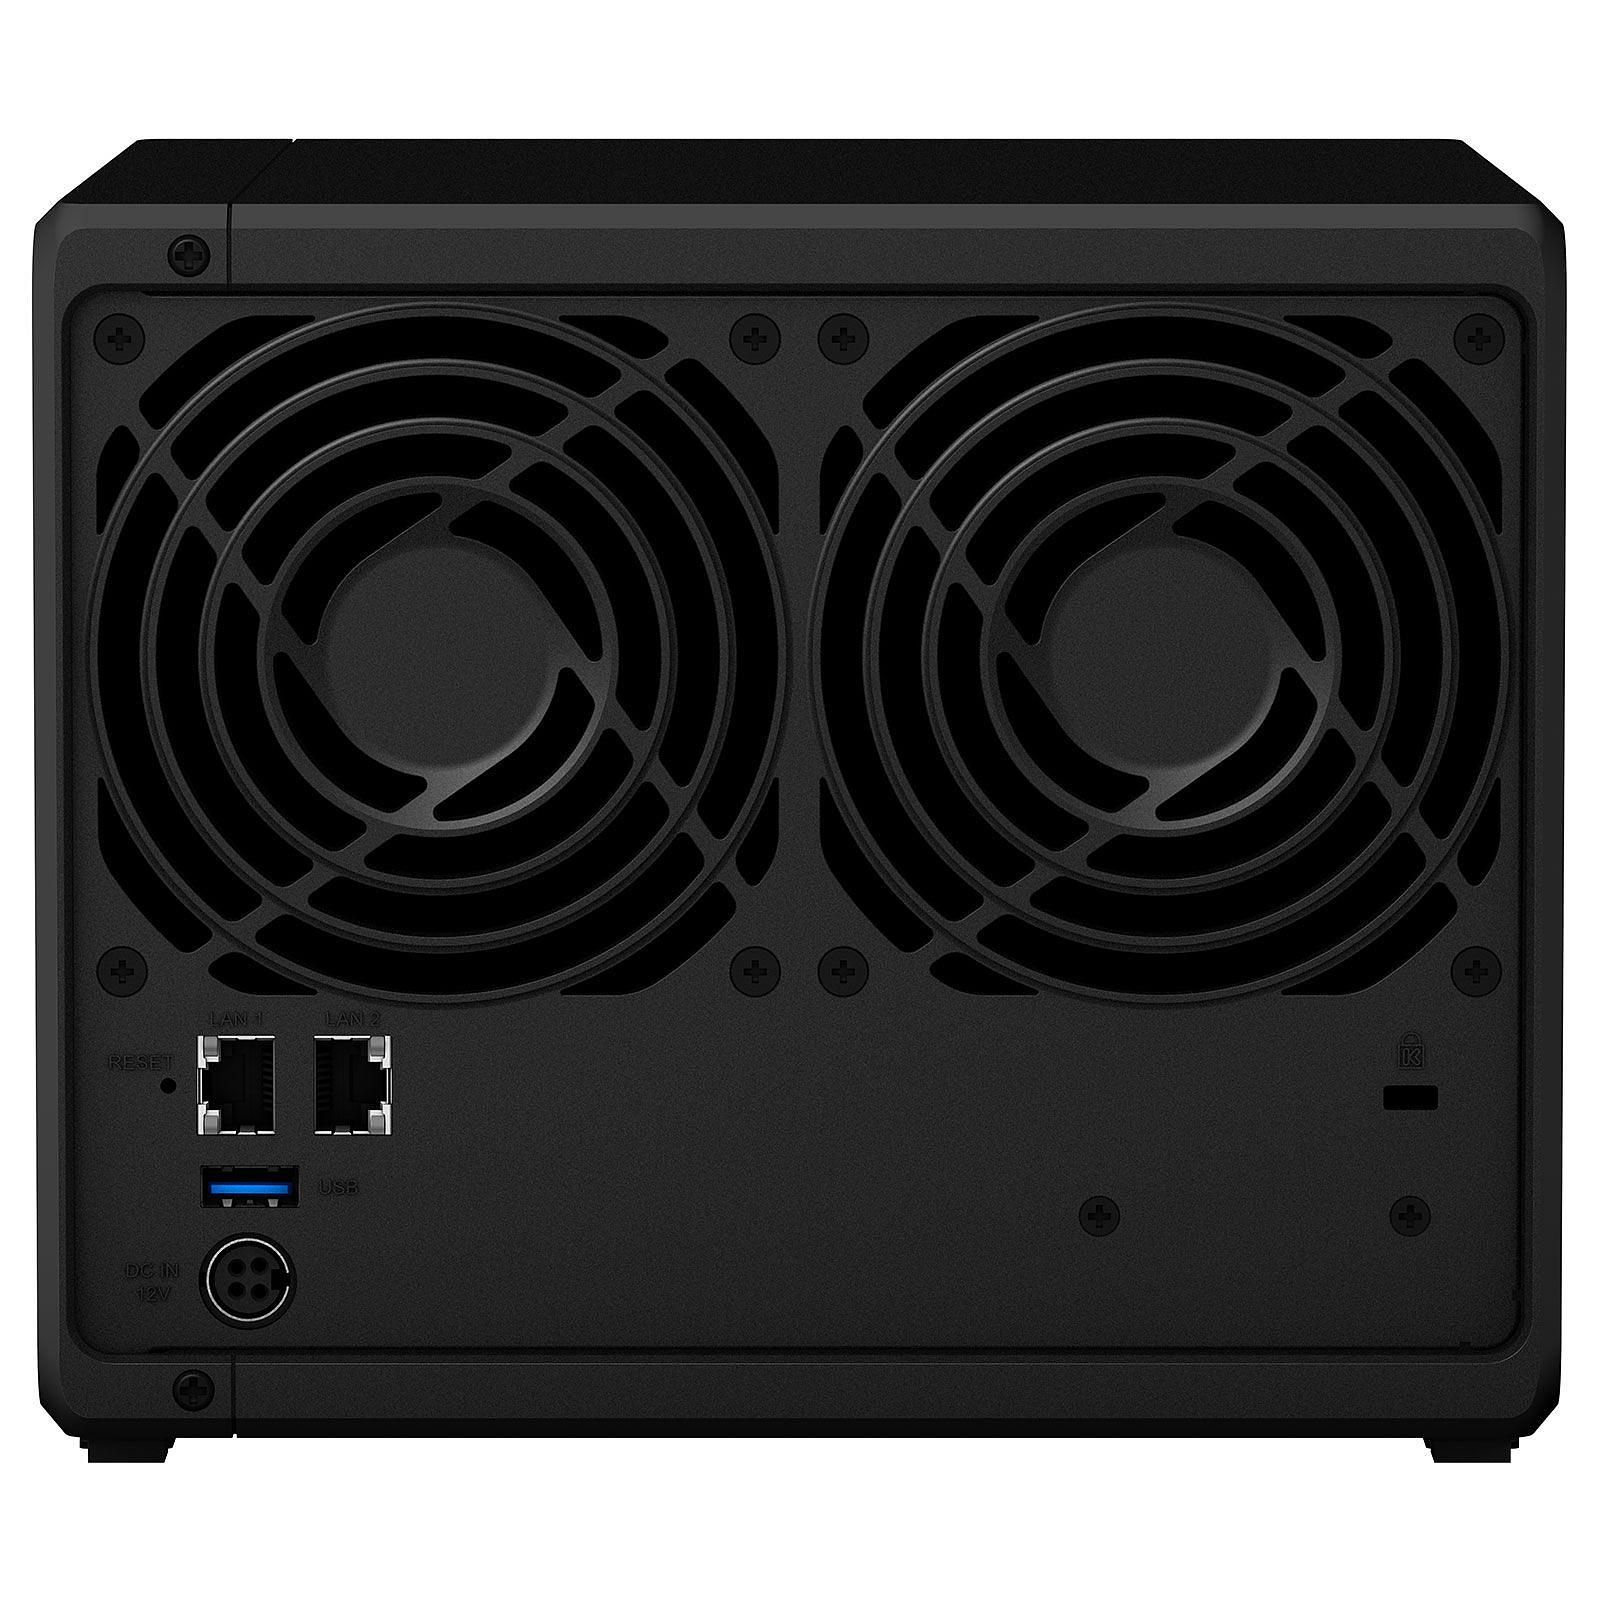 Serveur NAS Synology DS420+ - 4 HDD